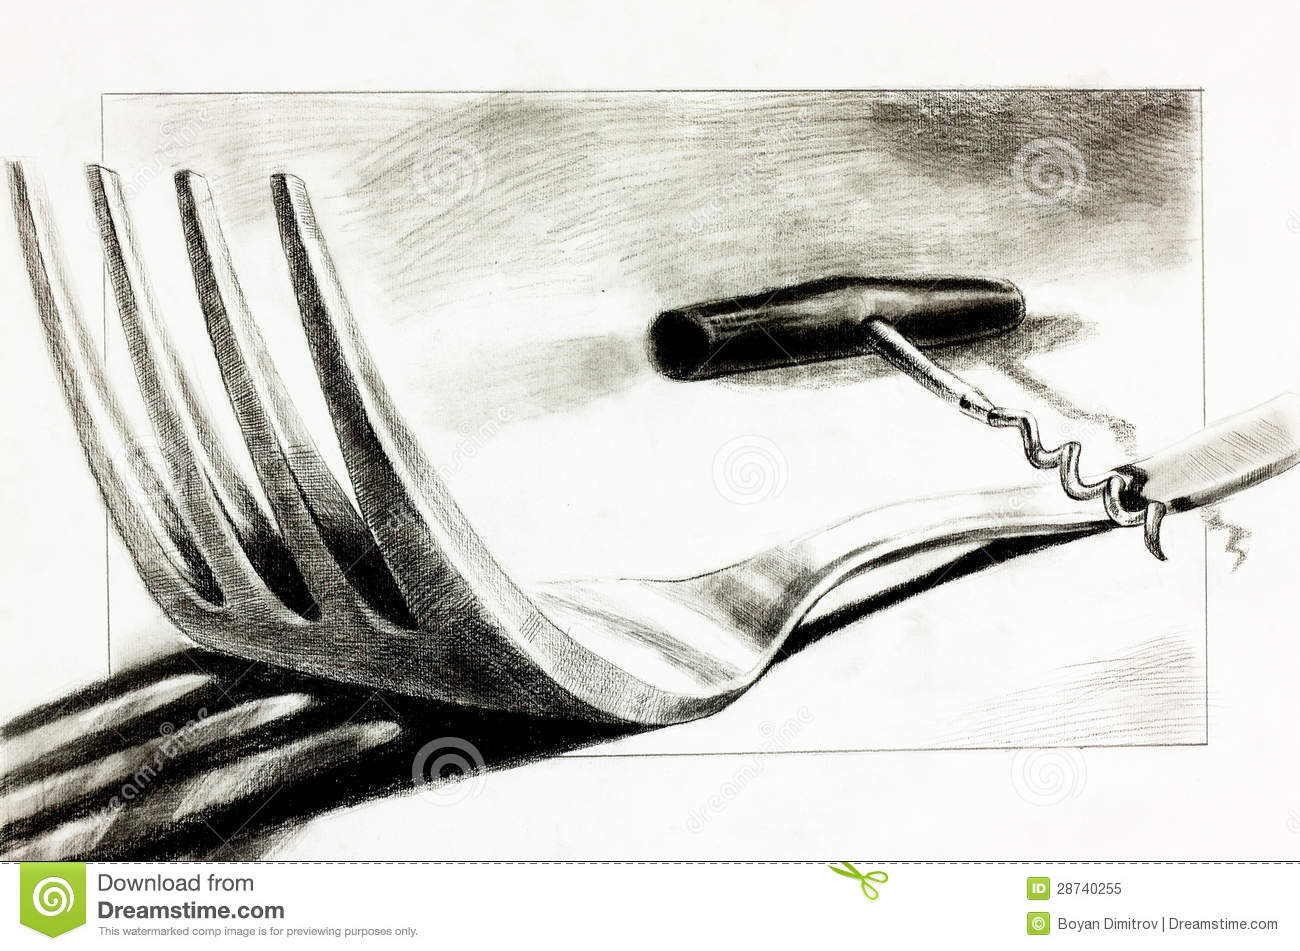 Original pencil or drawing charcoal and hand drawn painting or working sketch of a fork and corkscrew free composition